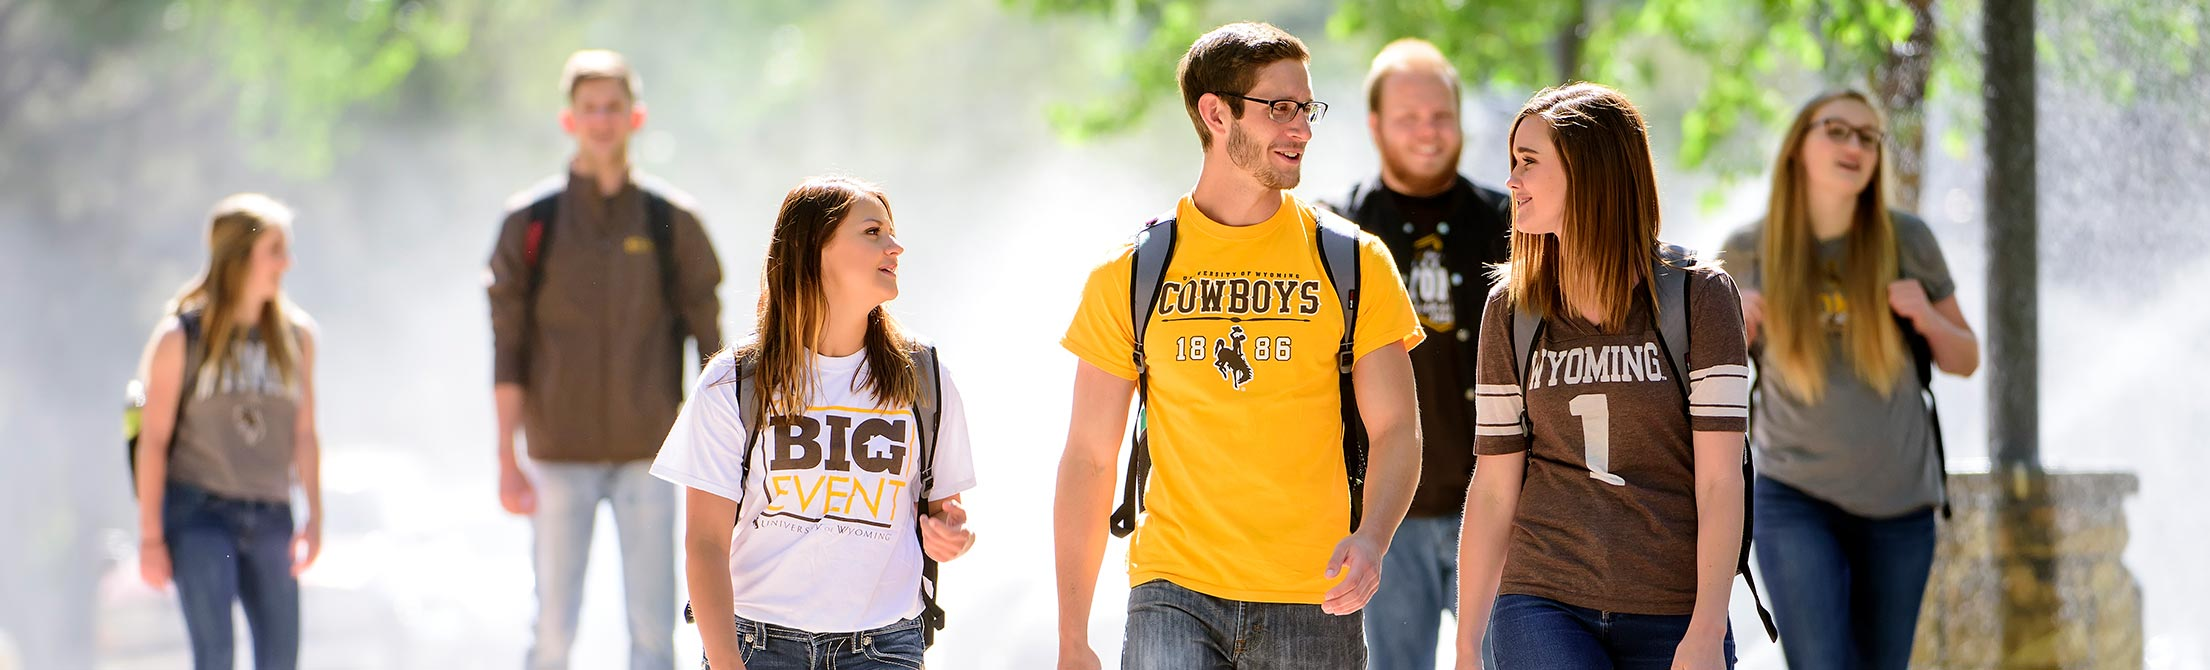 University of Wyoming students on campus